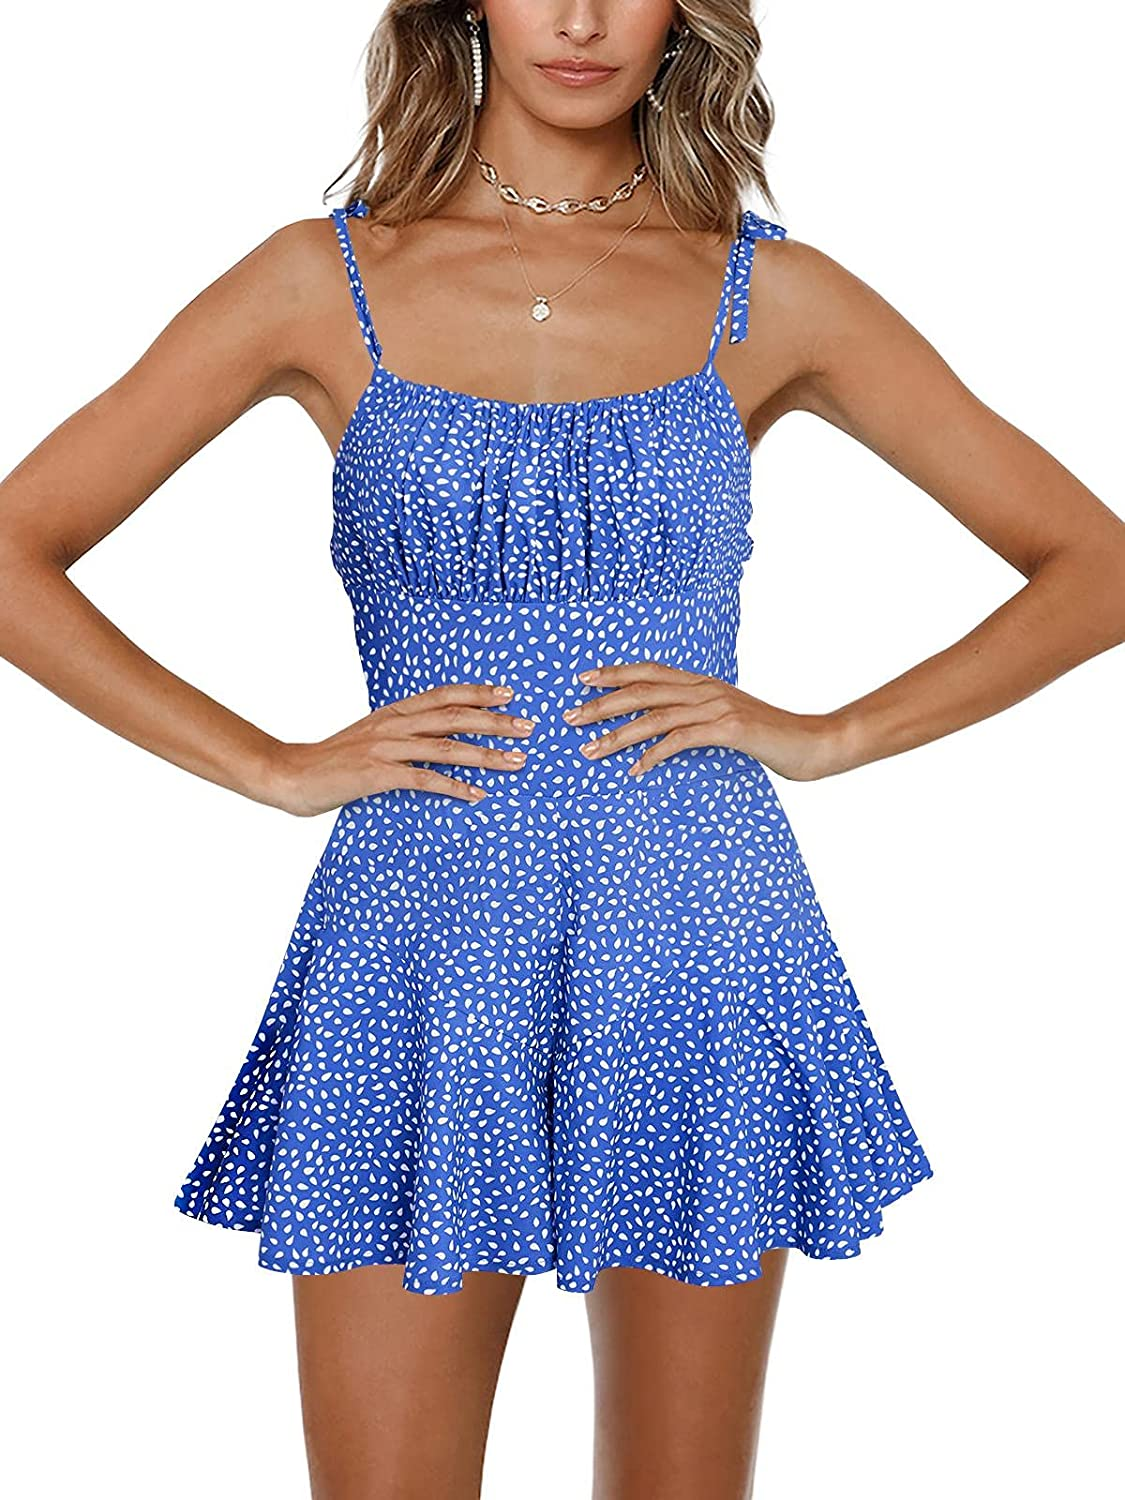 Jeanewpole1 Womens Spaghetti Outlet sale feature Bombing free shipping Strap Print L Wide Jumpsuit Smocked